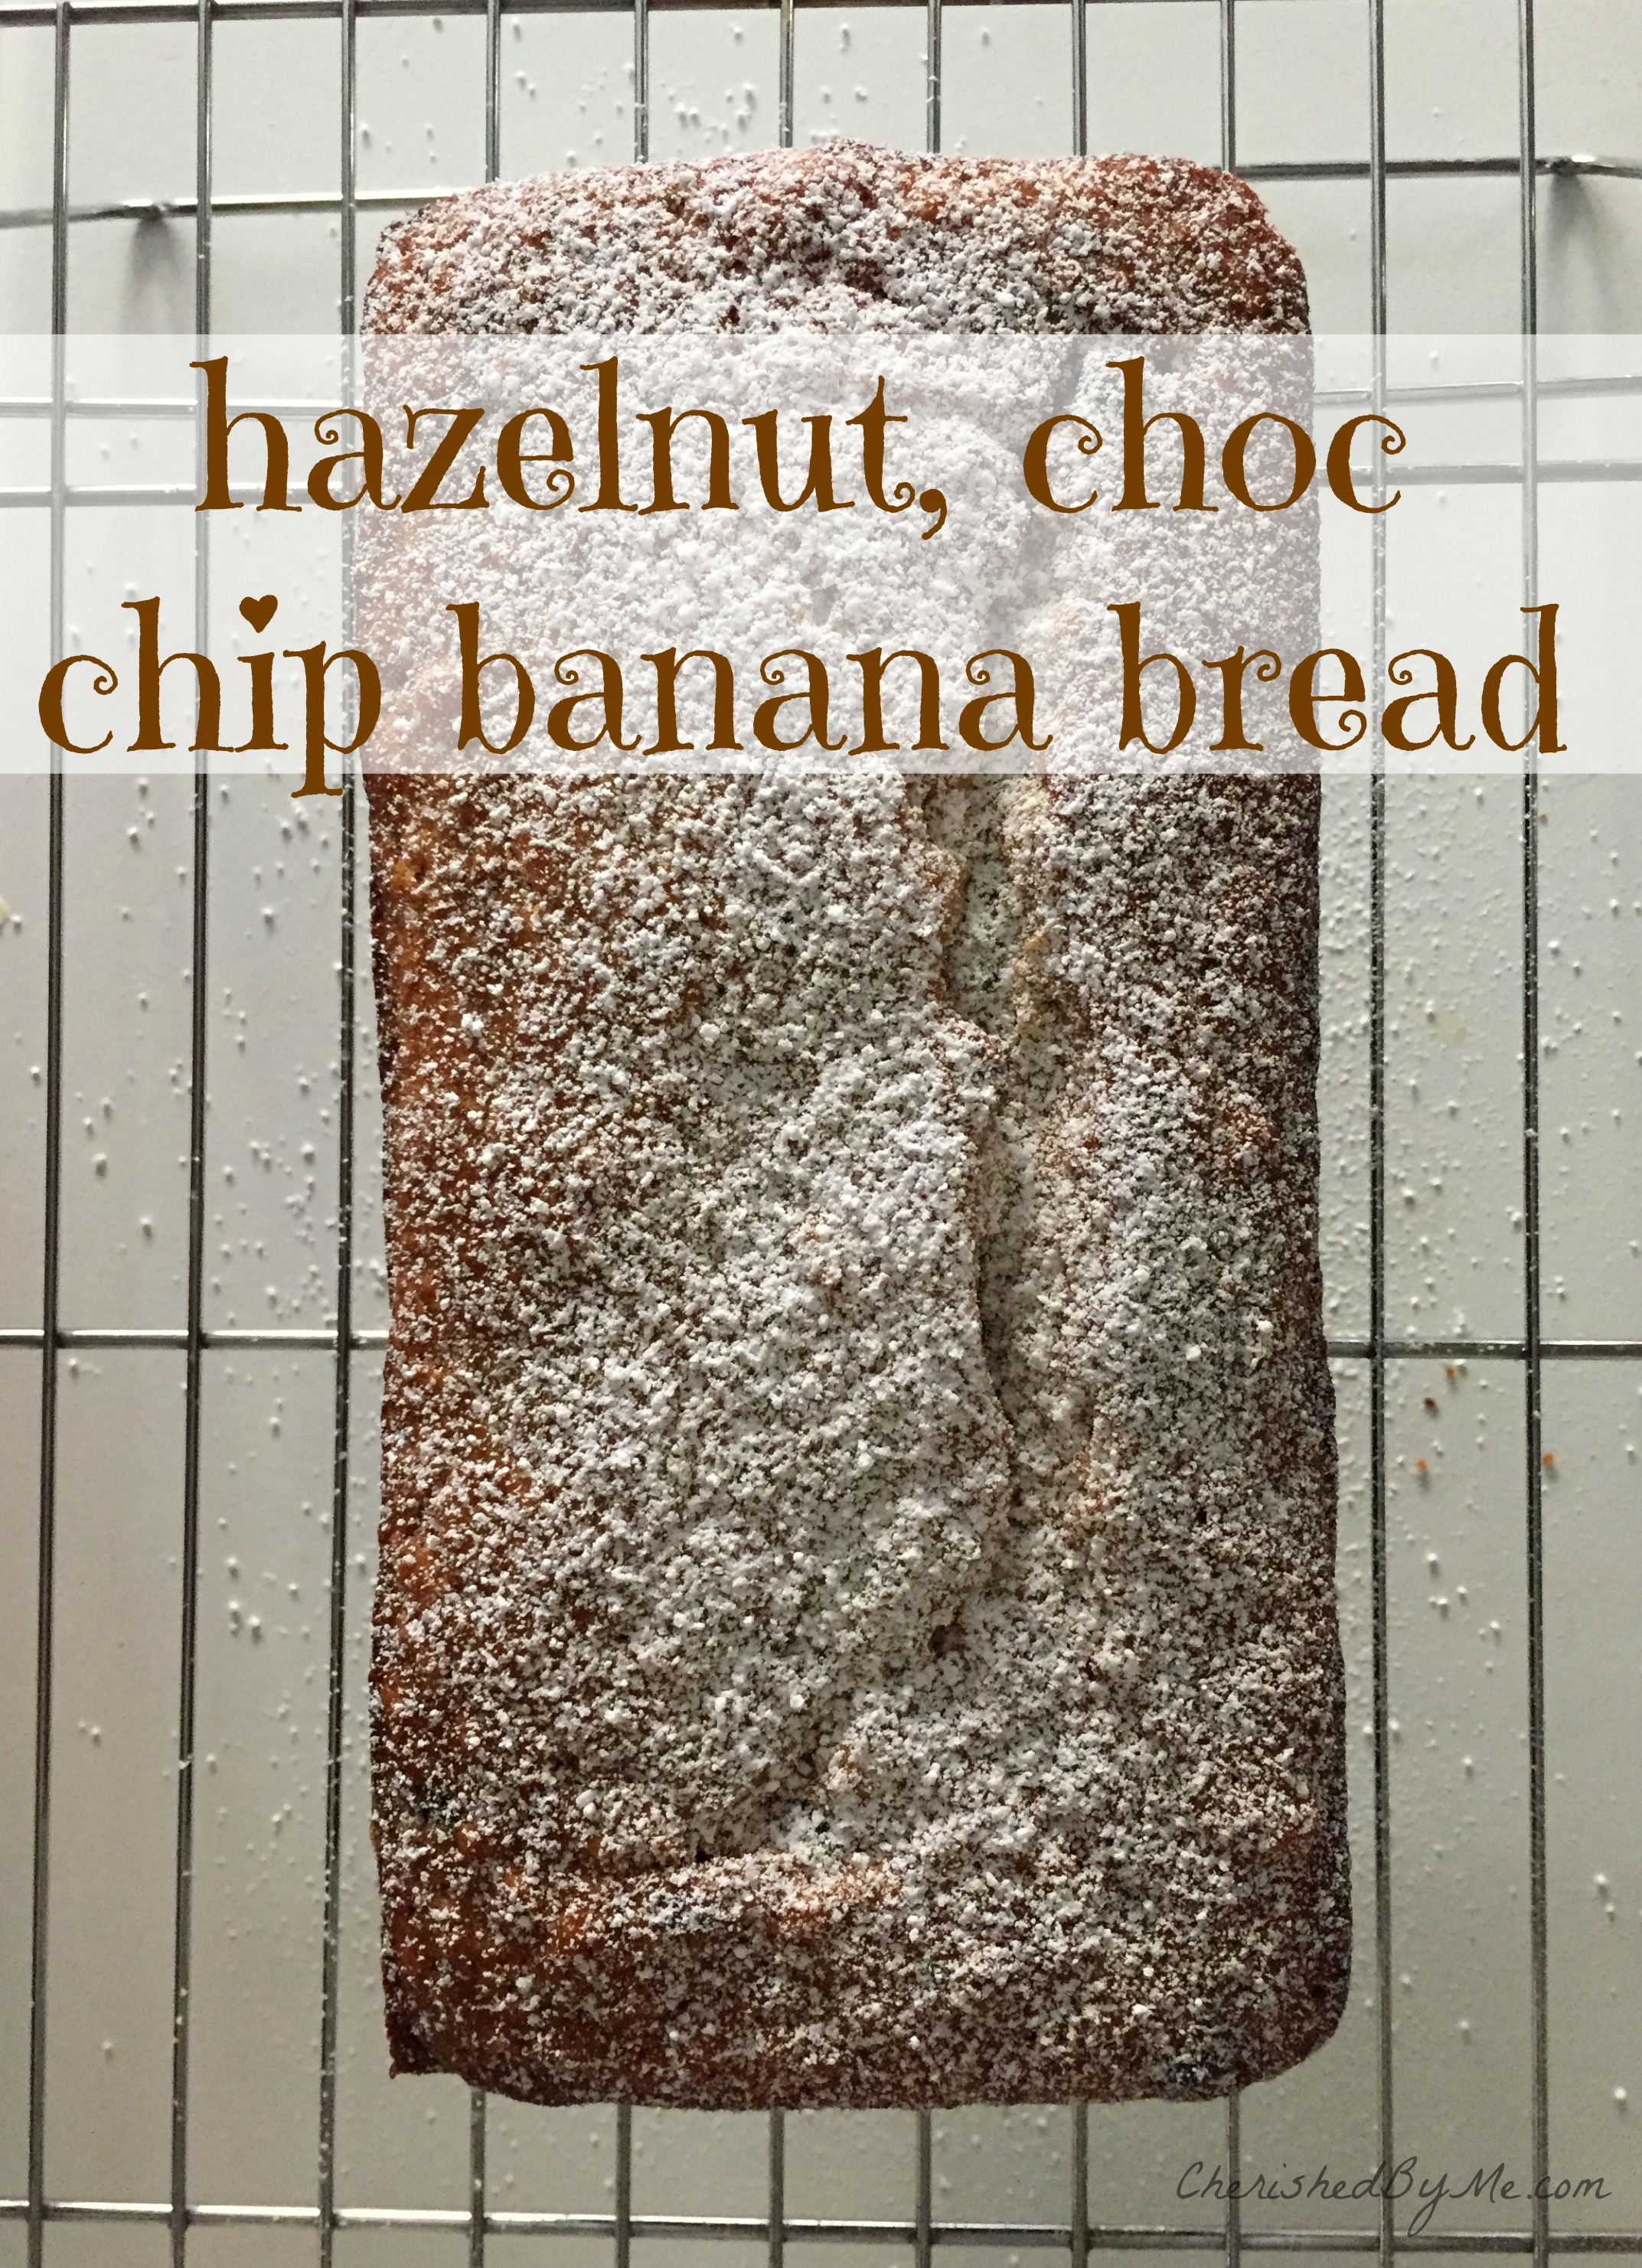 A delicious hazelnut, choc chip banana bread